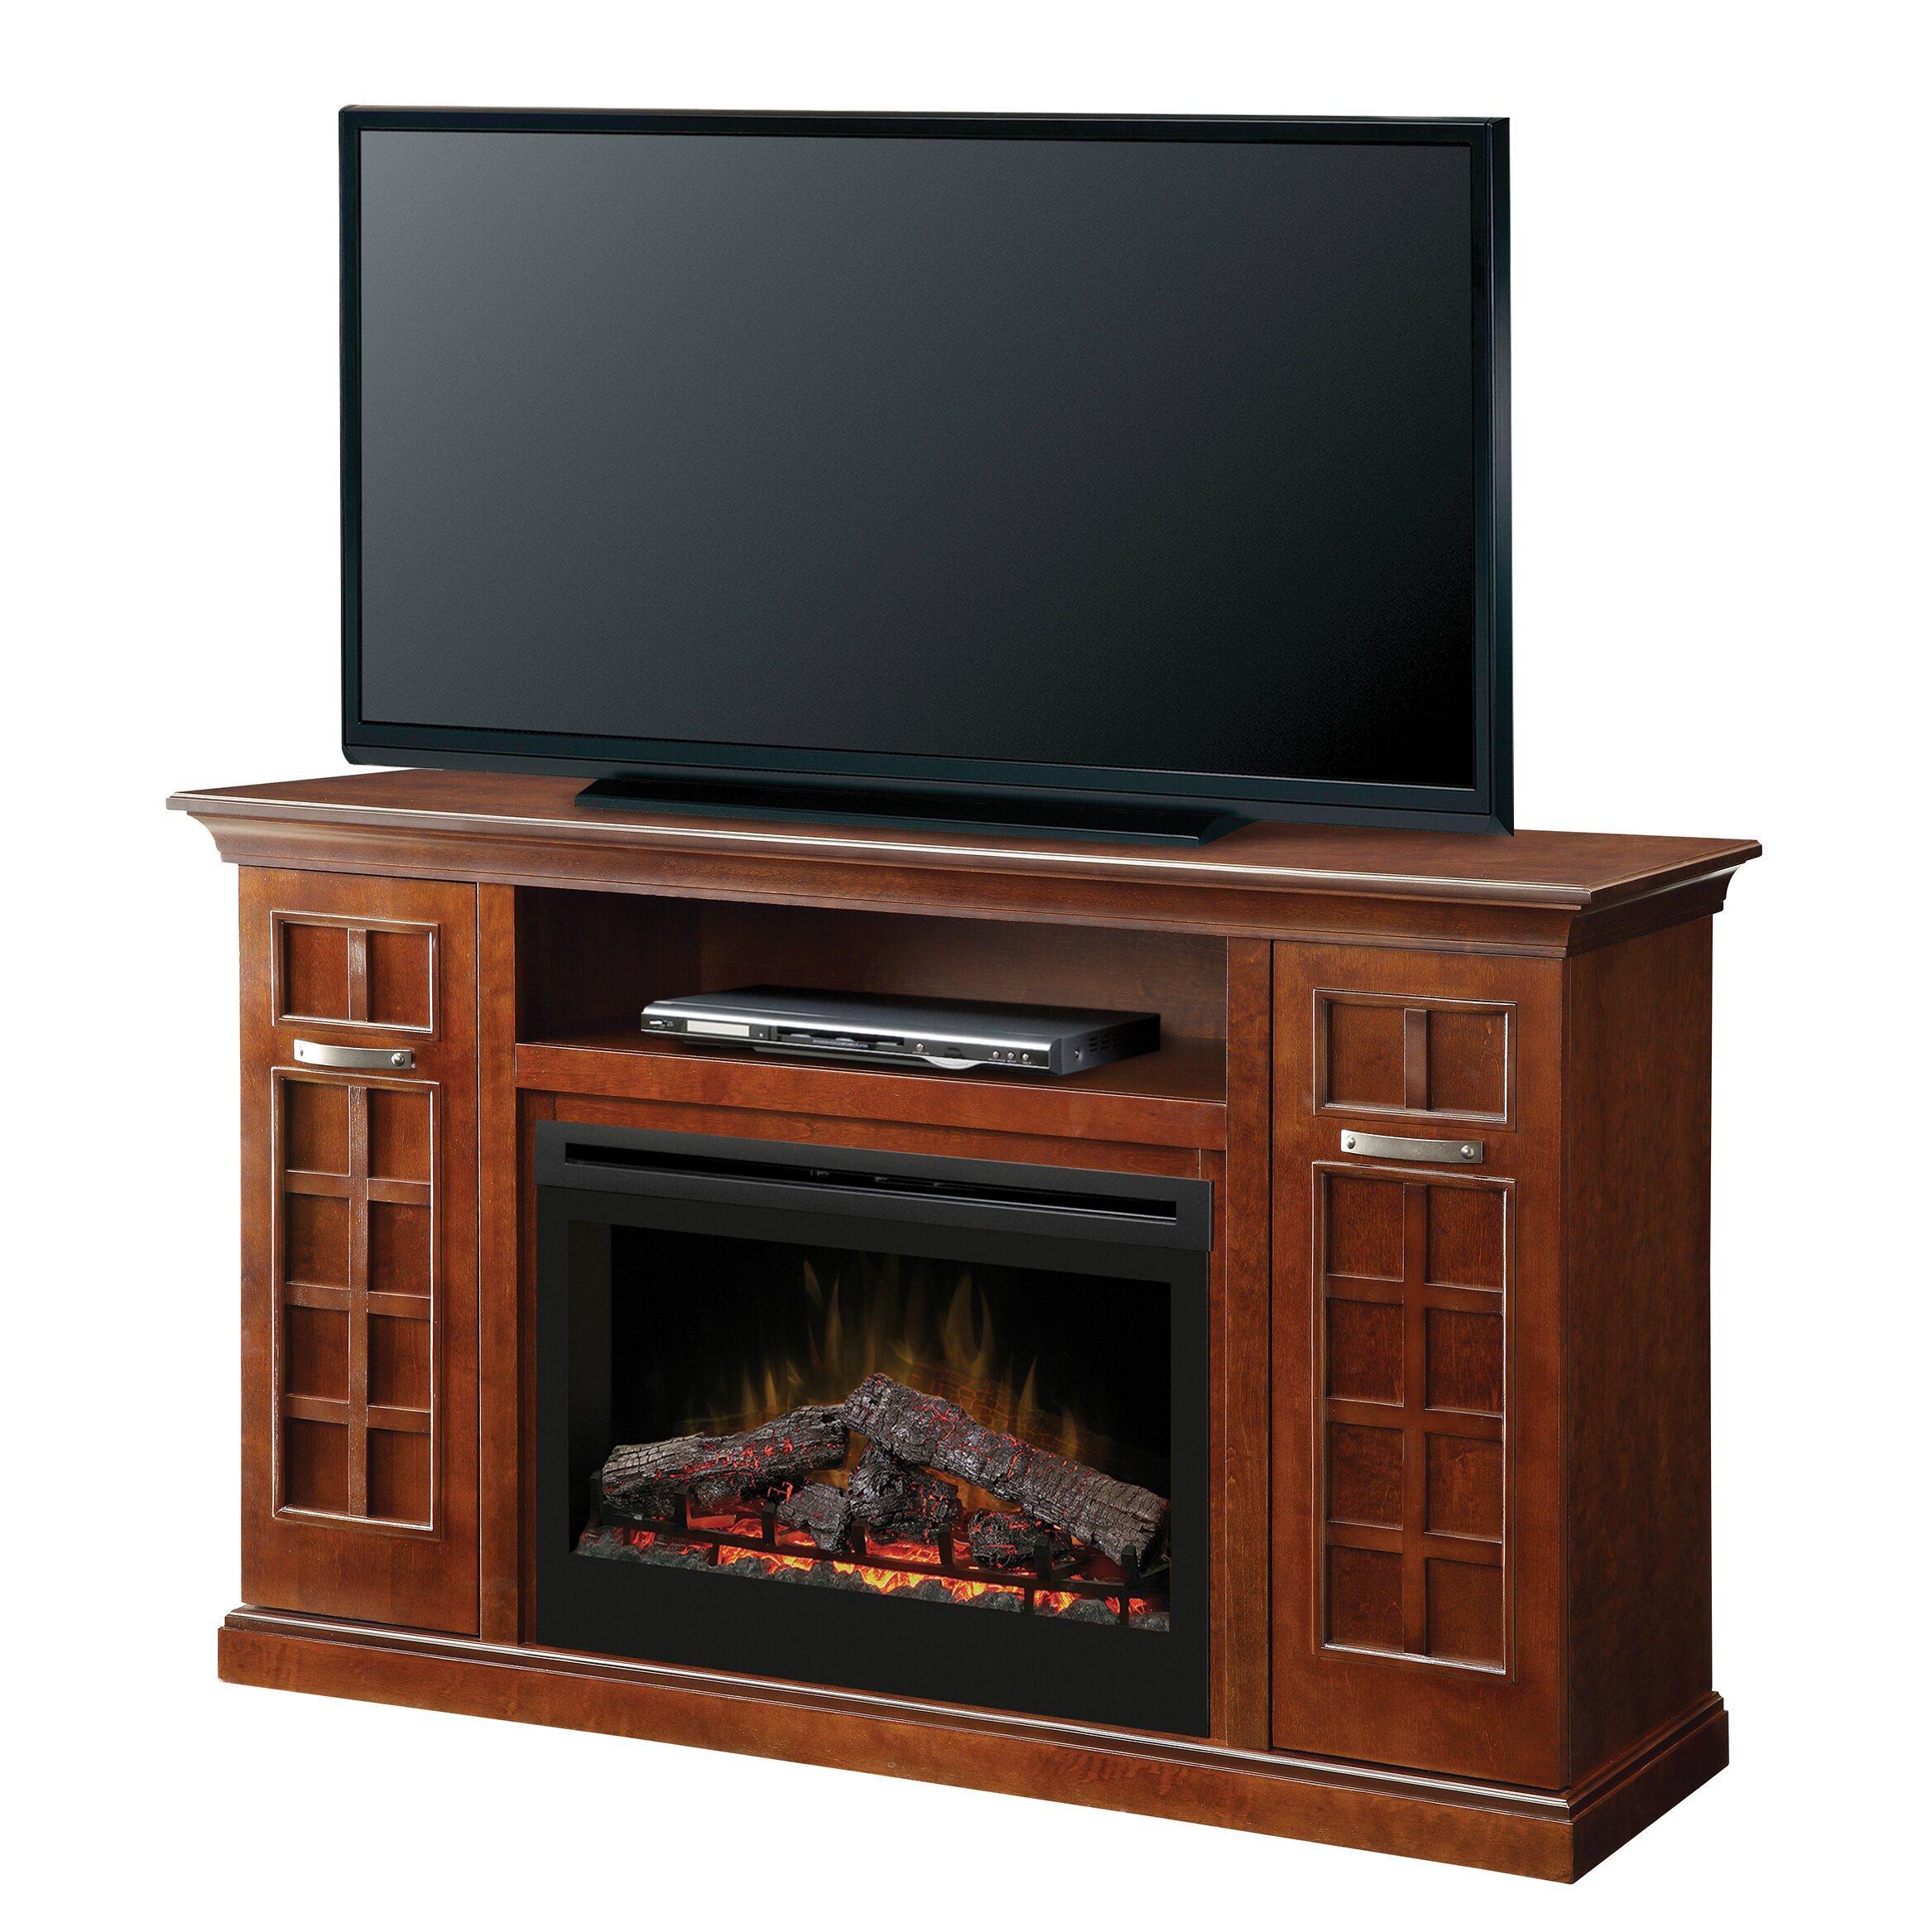 Dimplex Yardley Media Console Electric Fireplace Reviews Wayfair